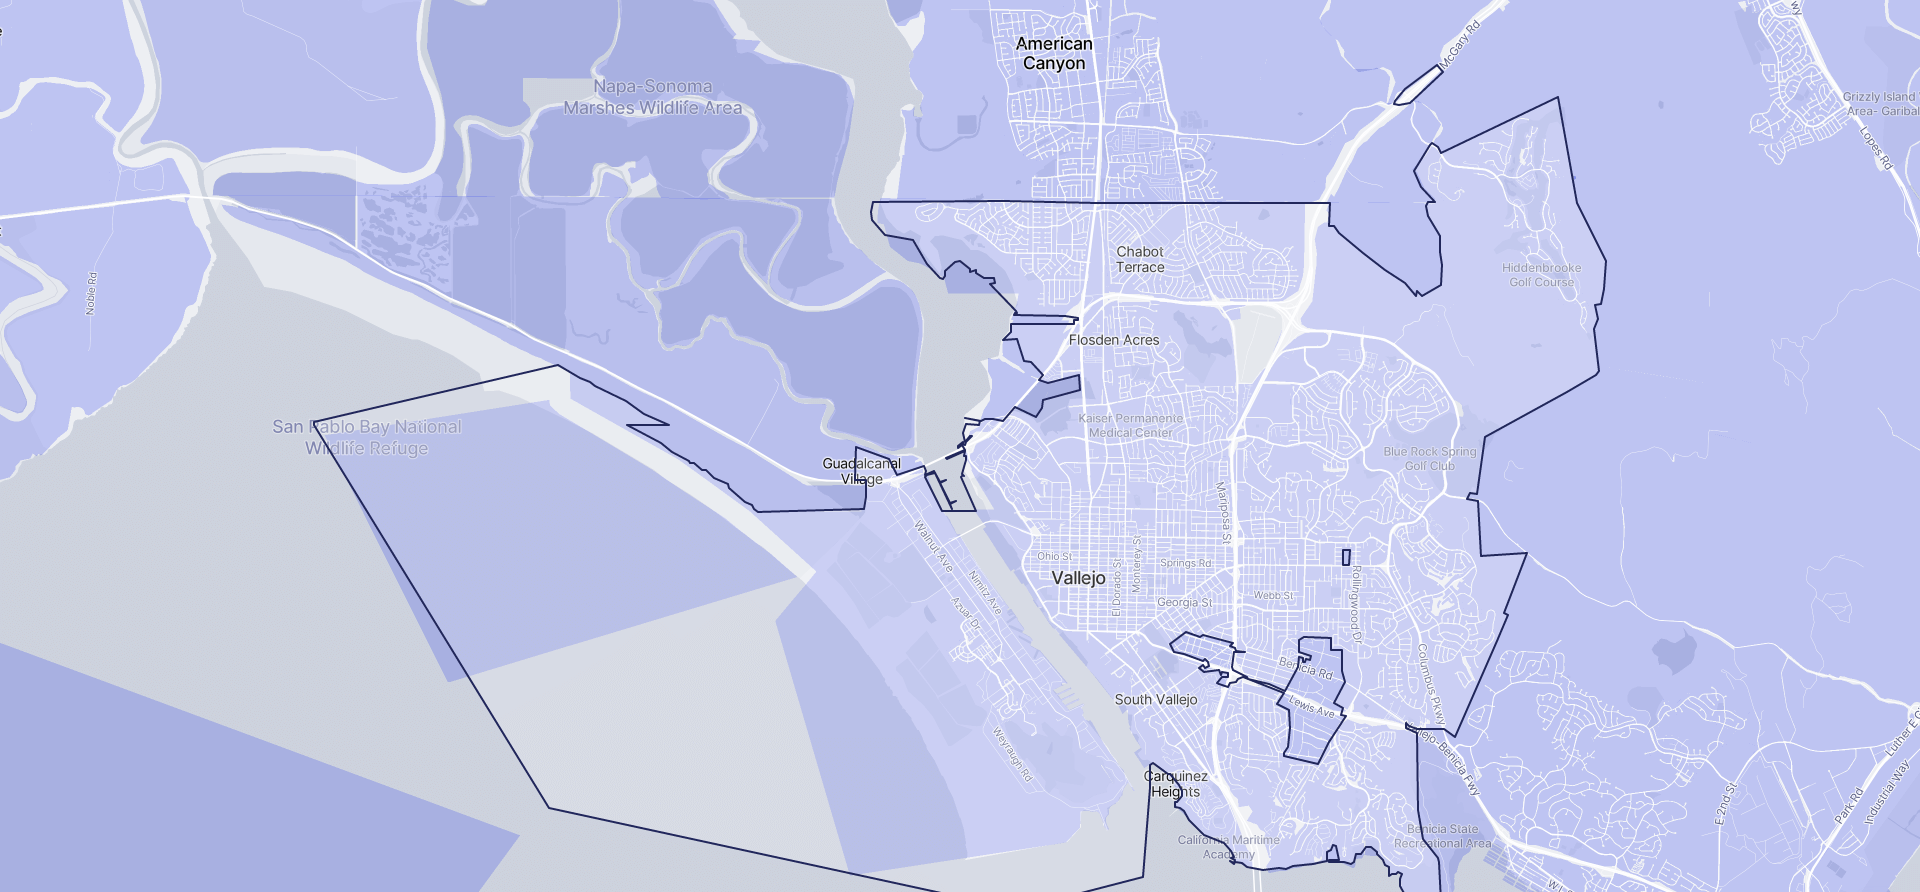 Image of Vallejo boundaries on a map.